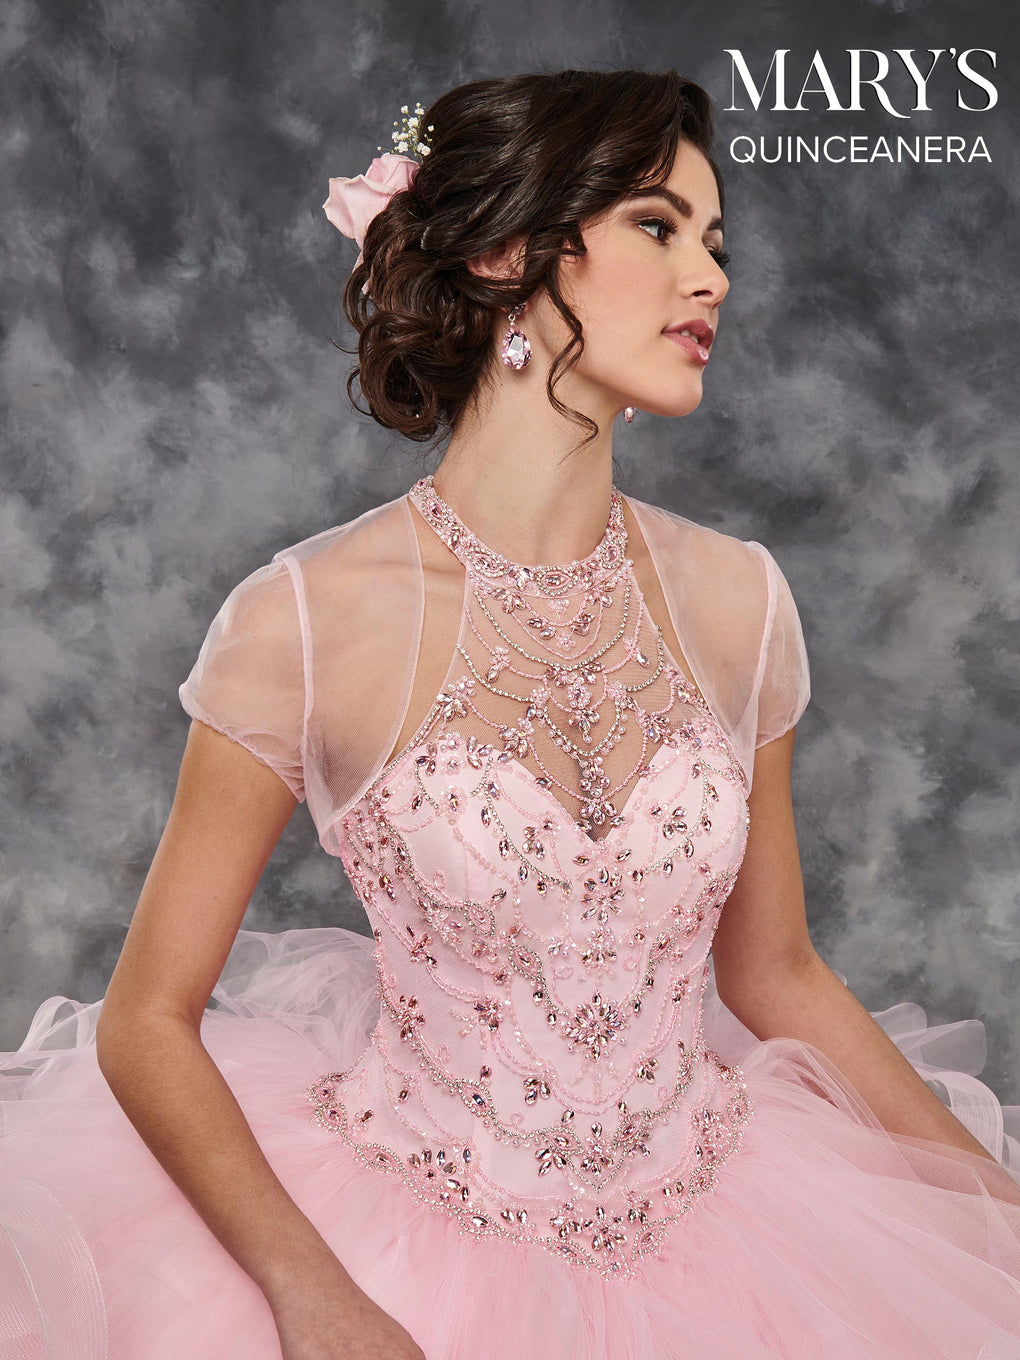 Marys Quinceanera Dresses in Aqua, Burgundy, Pink, or White Color